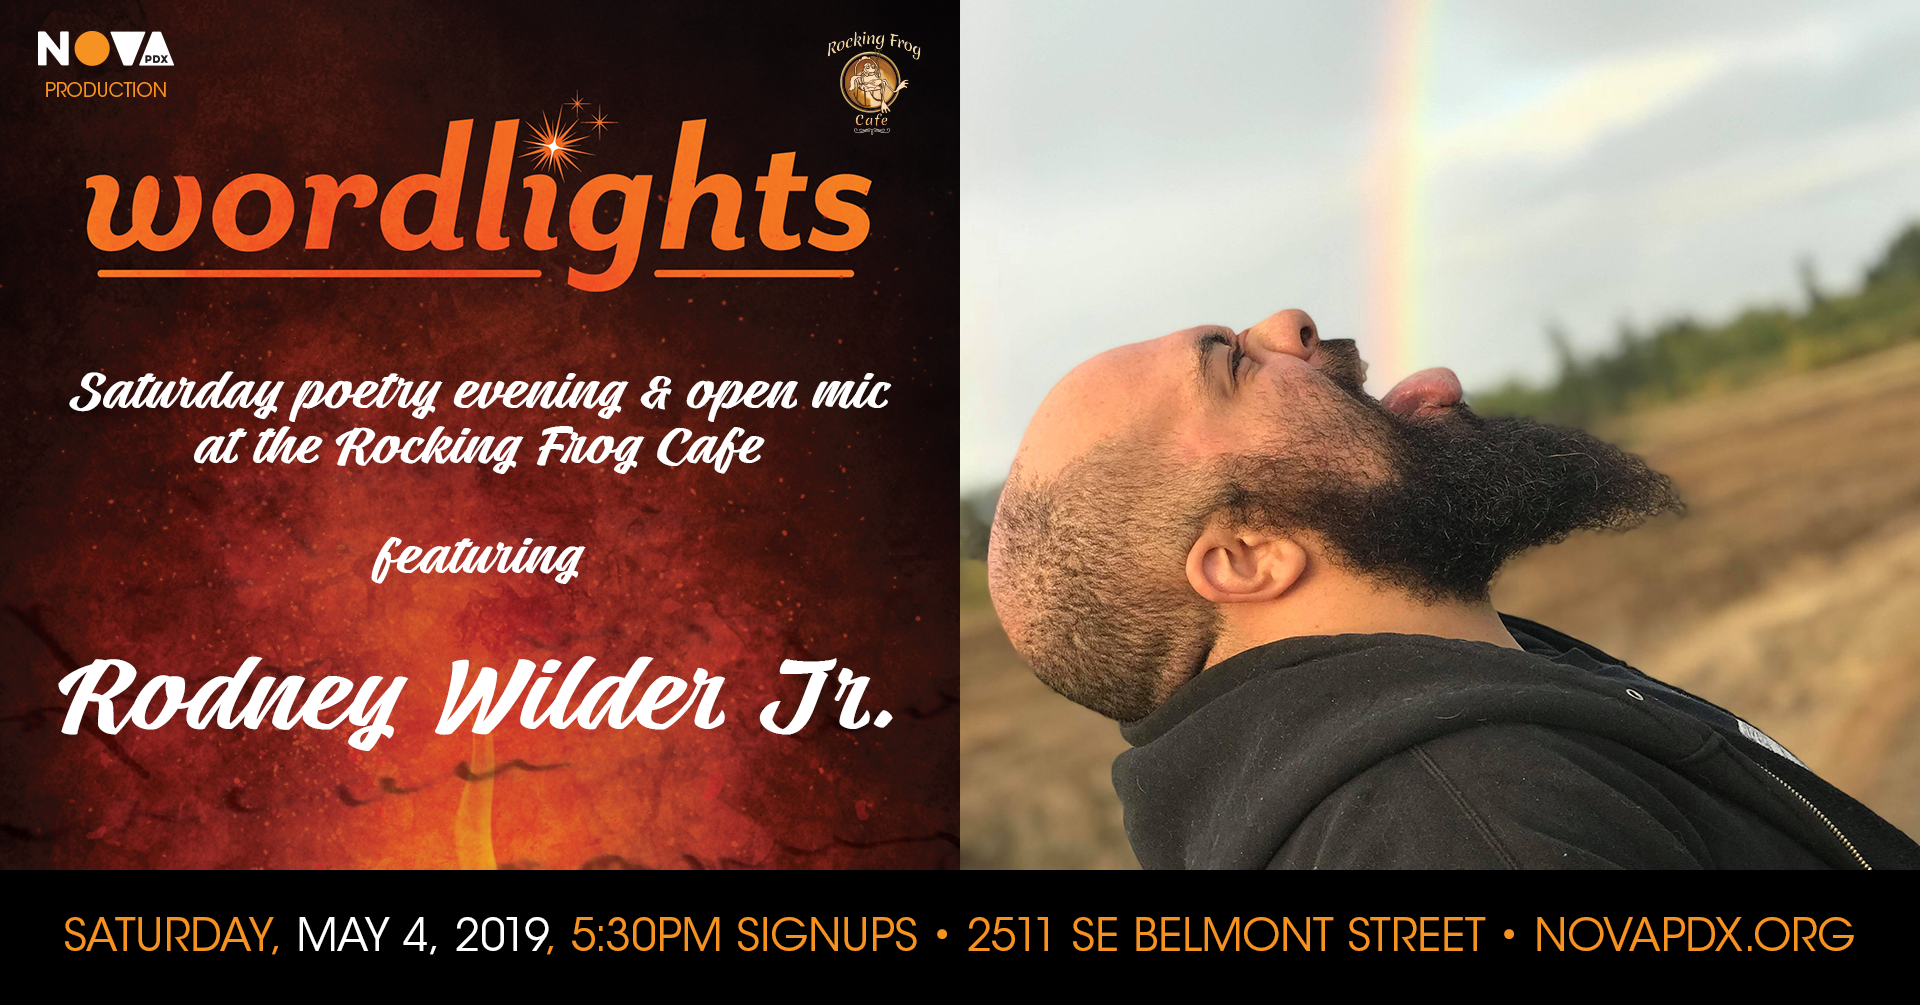 Wordlights-FB-Event-HeaderNew-05042019.png